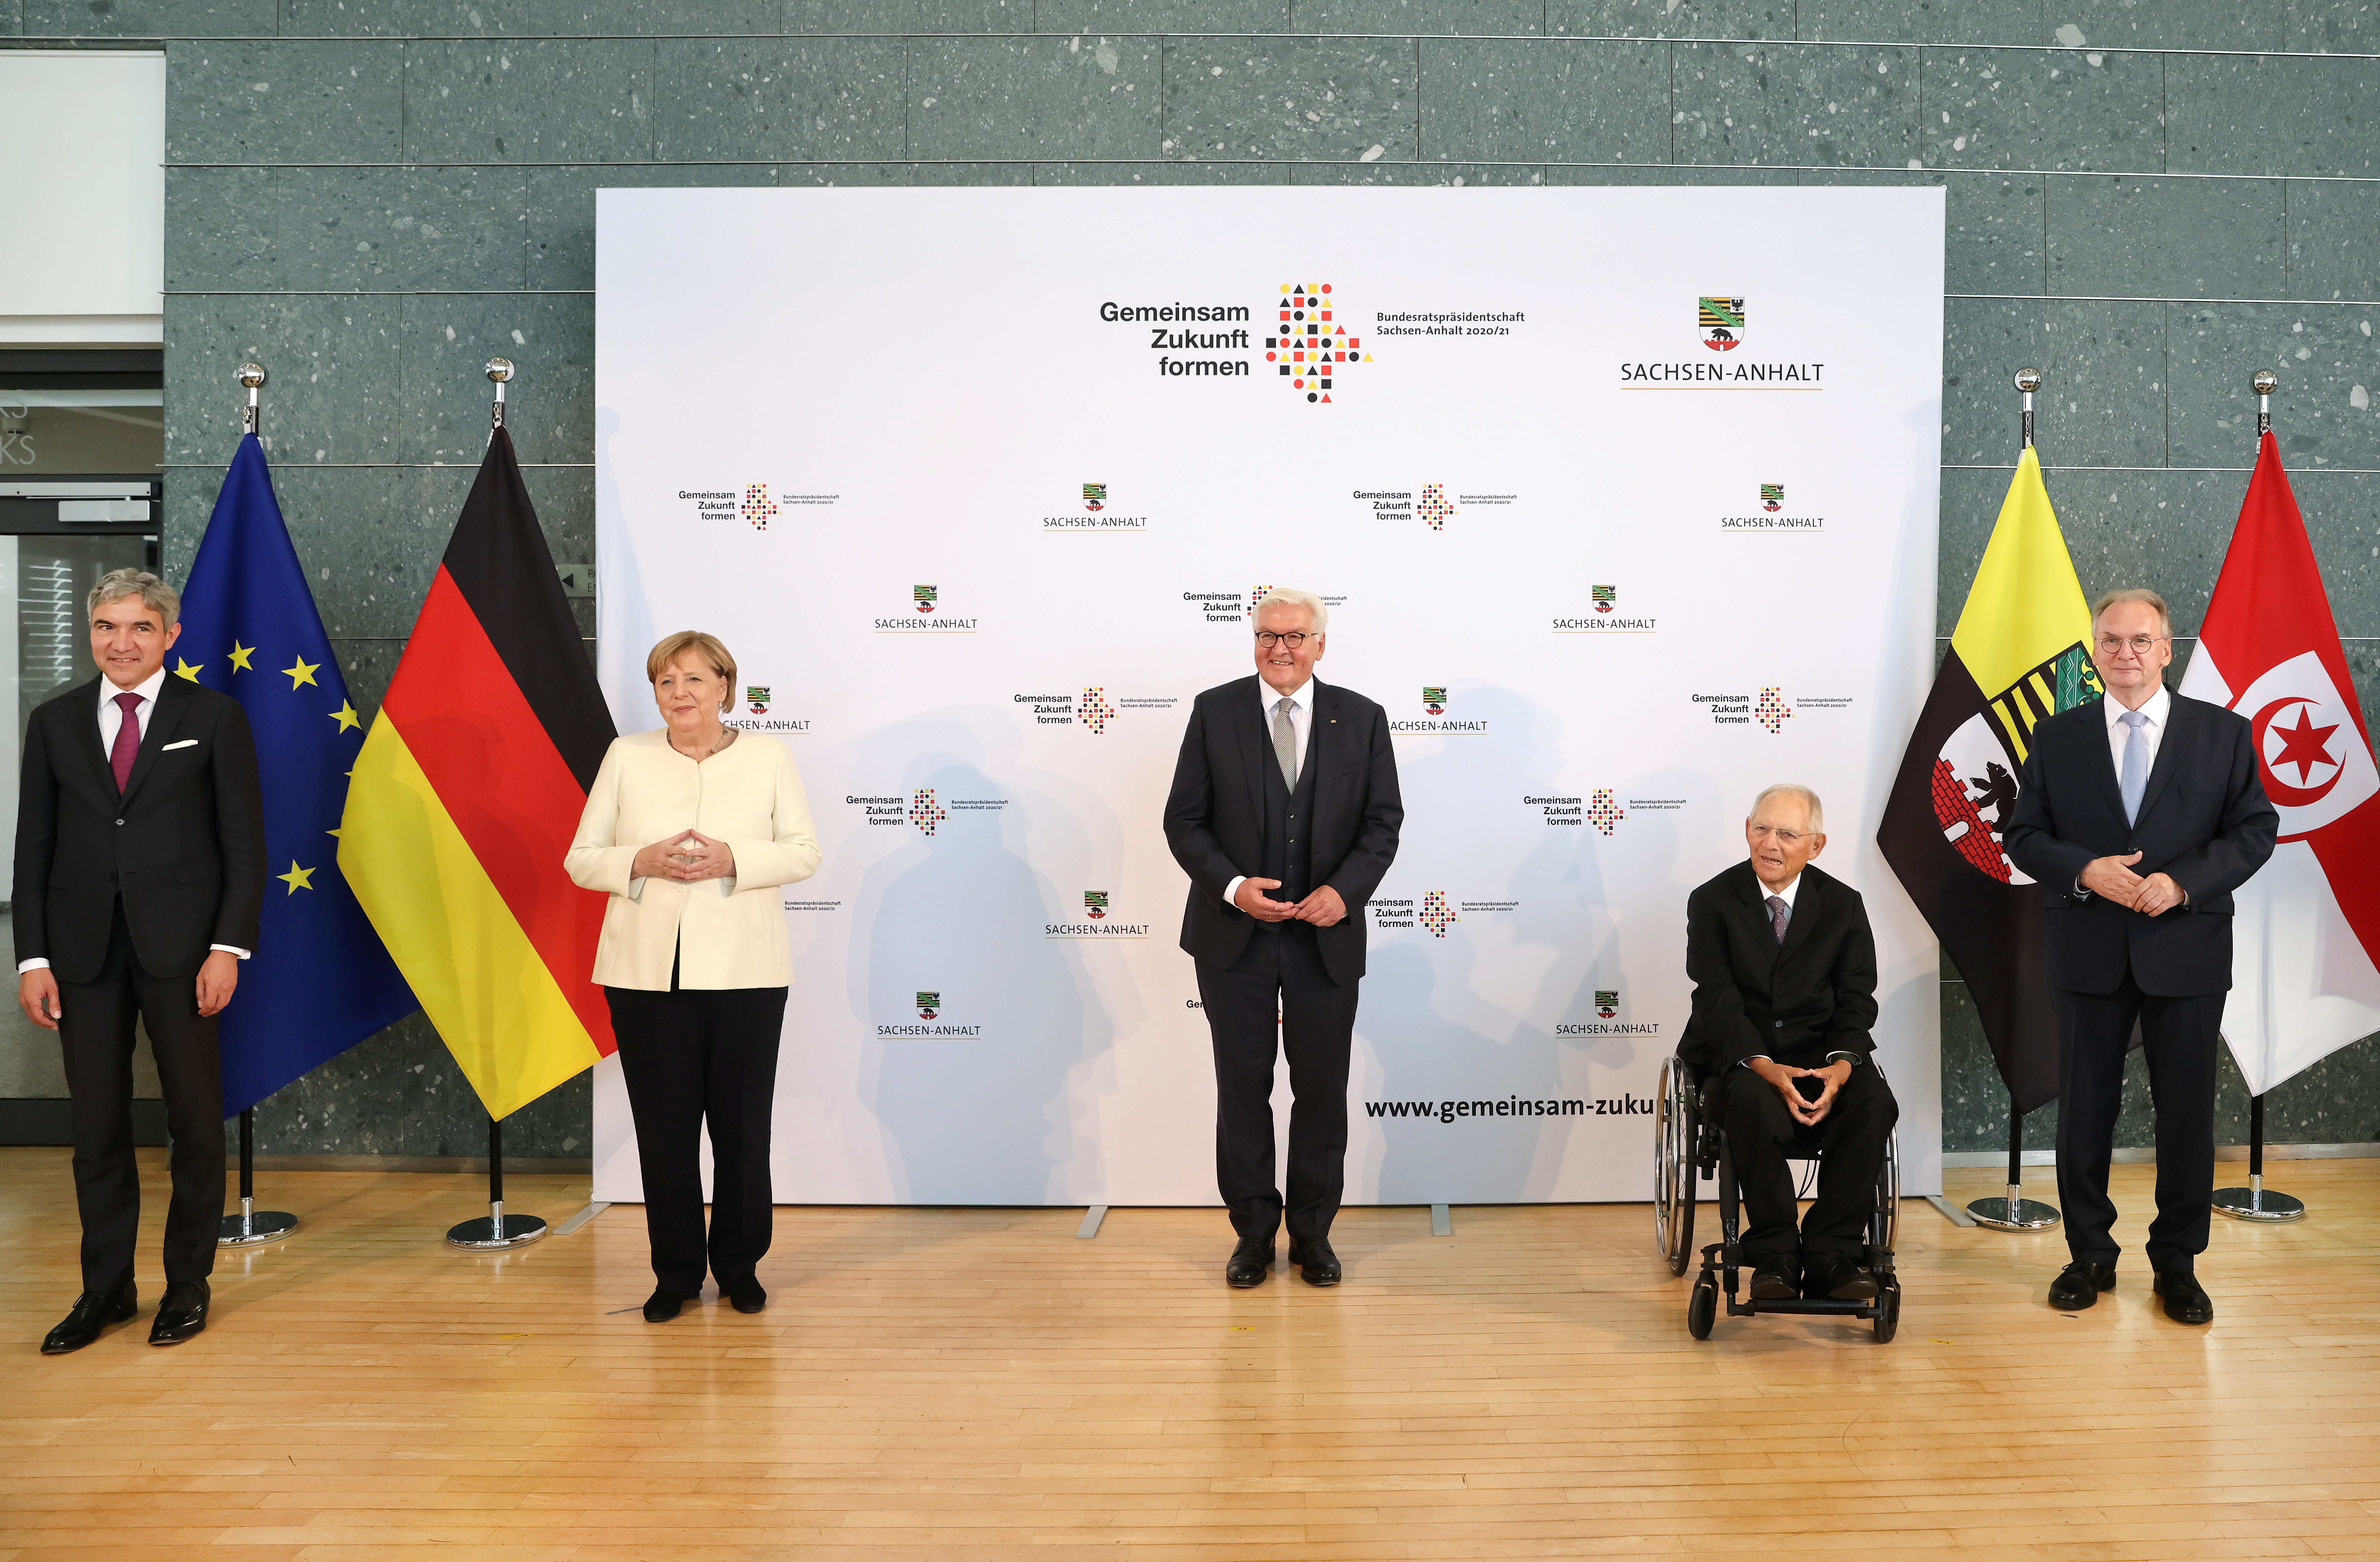 Germany's Federal Constitutional Court president Stephan Harbarth, outgoing German Chancellor Angela Merkel, German President Frank-Walter Steinmeier, President of the Bundestag Wolfgang Schauble and Saxony-Anhalt State Premier Reiner Haseloff stand for a group picture before a ceremony to mark the 31st anniversary of Germany's Unification Day, in the city of Halle, Germany, October 3, 2021. Jan Woitas/Pool via REUTERS